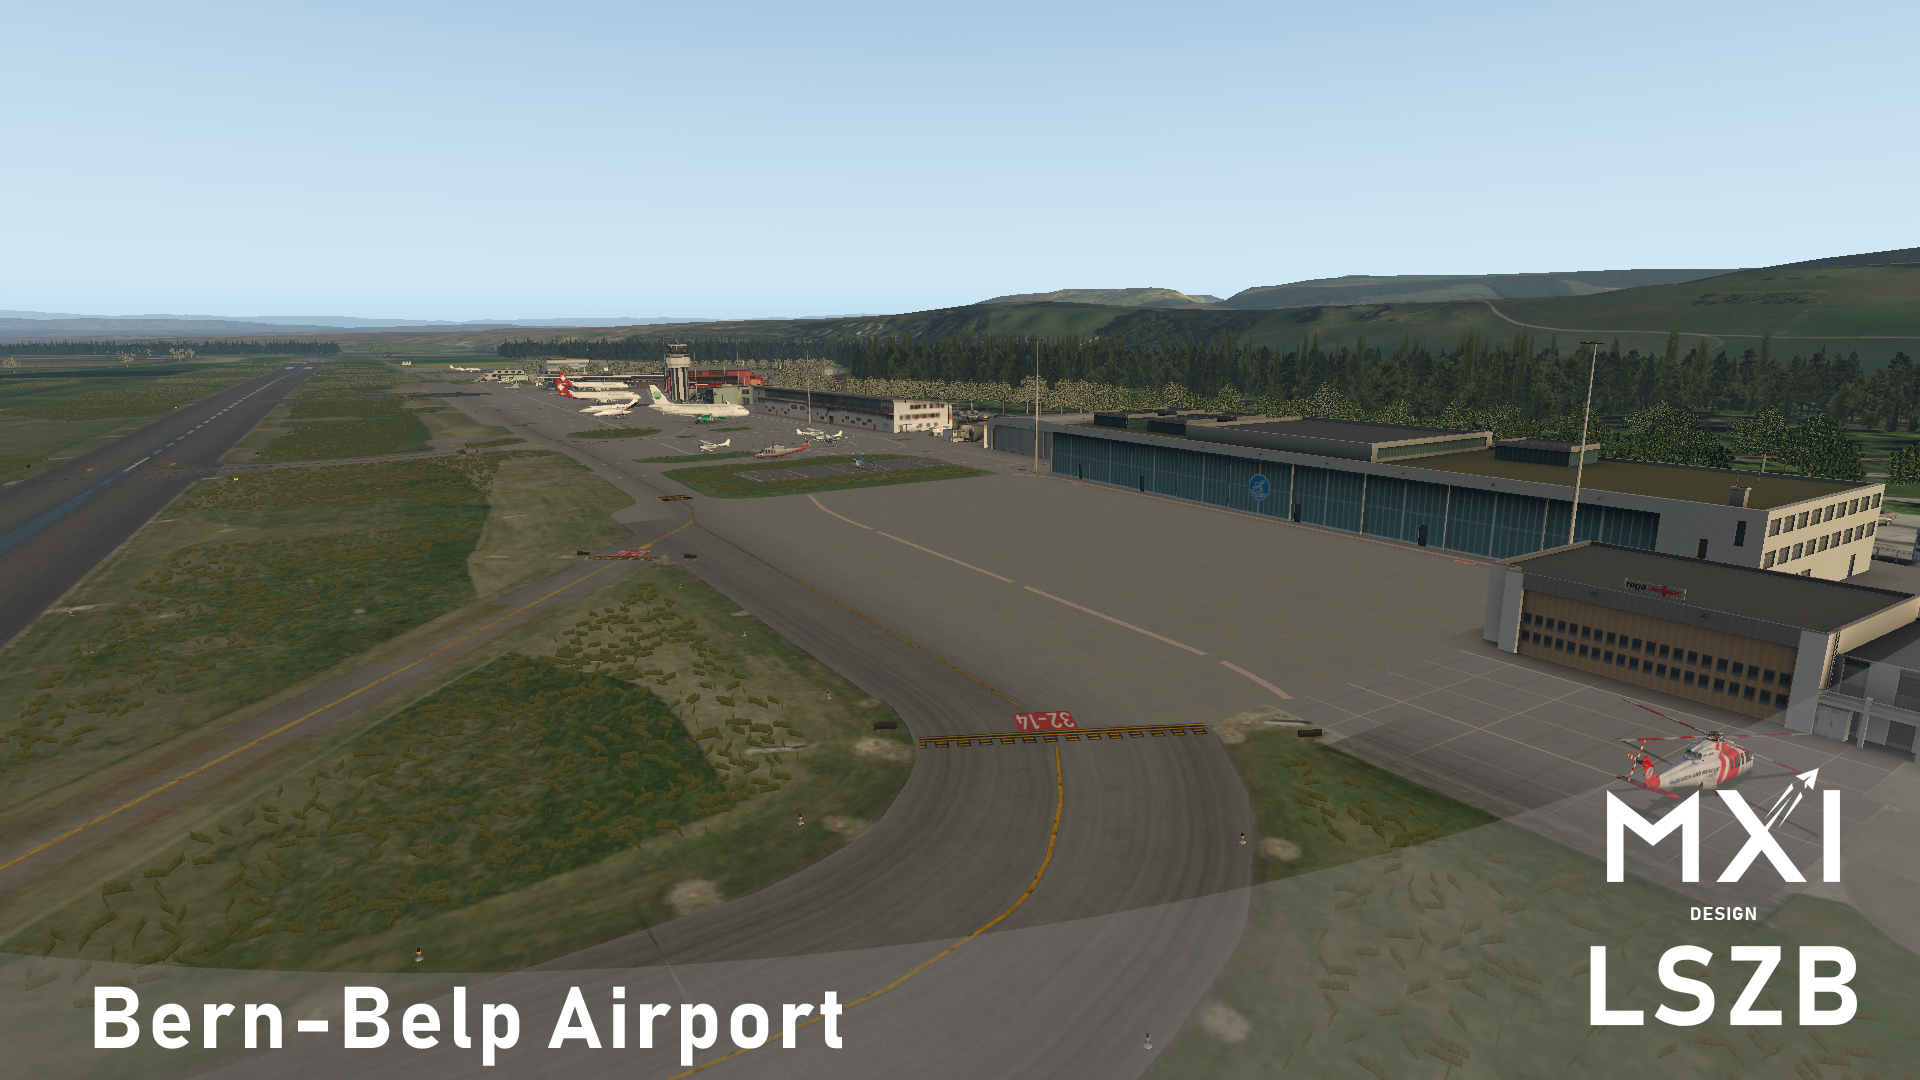 MXI DESIGN - LSZB - BERN-BELP AIRPORT FOR X-PLANE 11